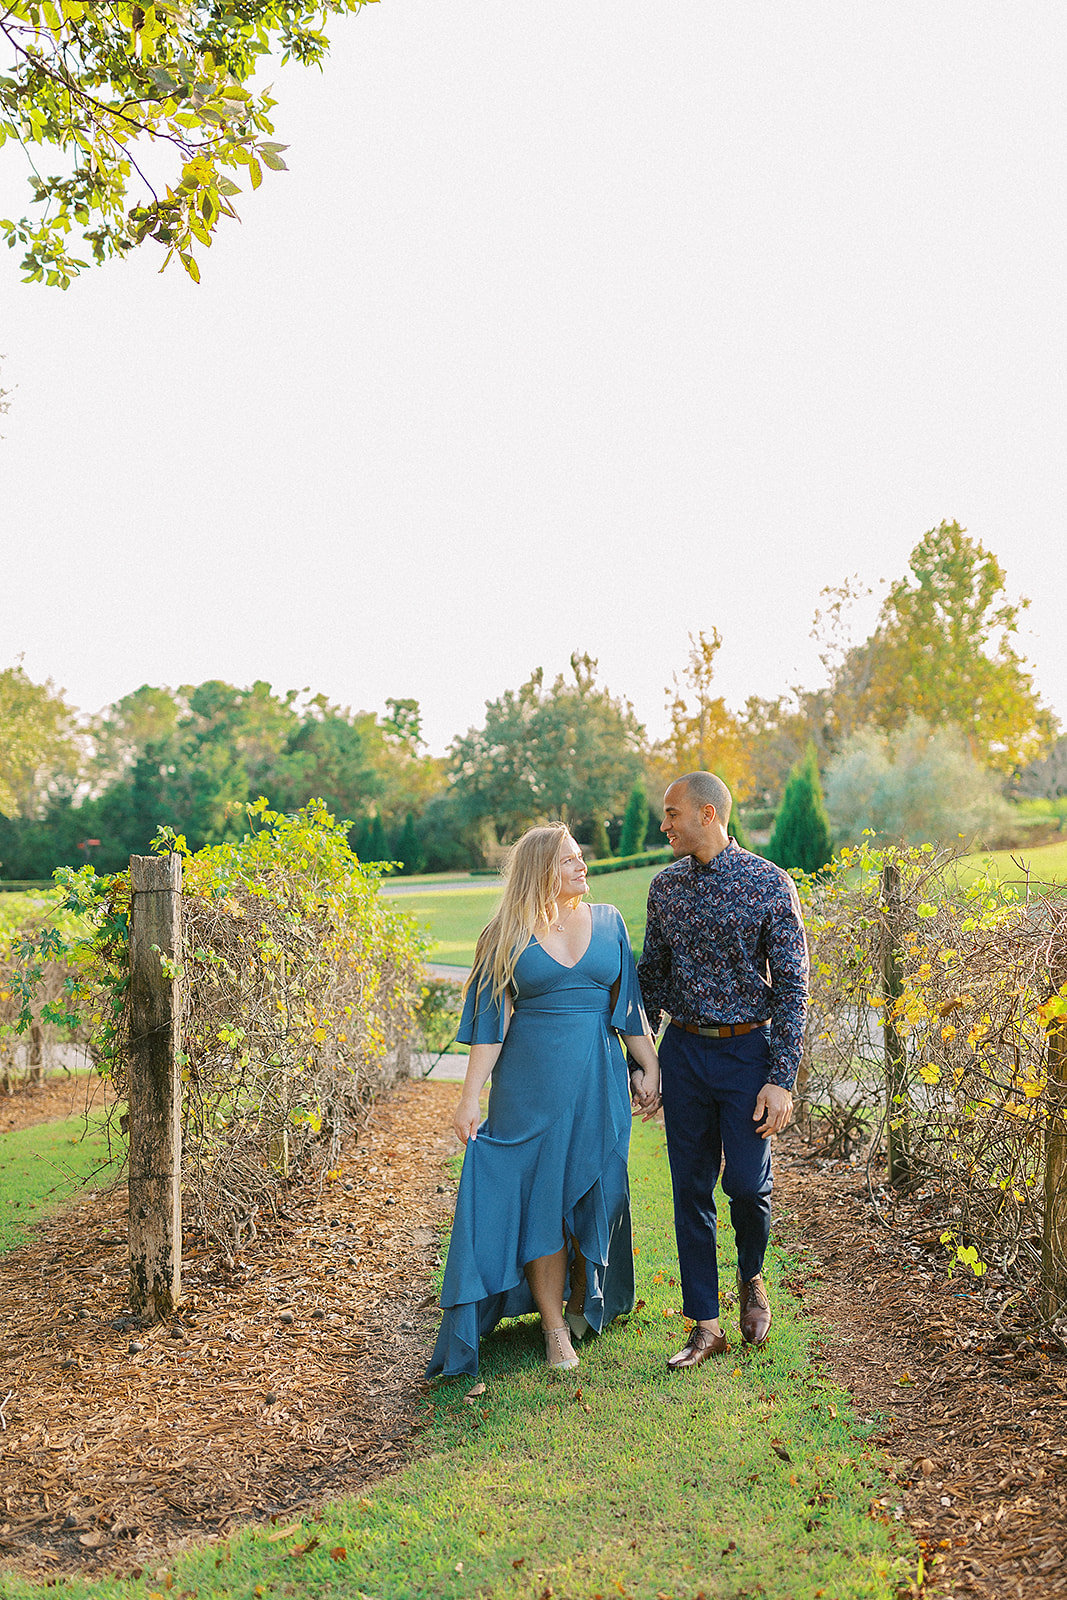 Rachel_+_Manny_Bello_Engagement_Session_Bella_Collina_Photographer_Casie_Marie_Photography-79